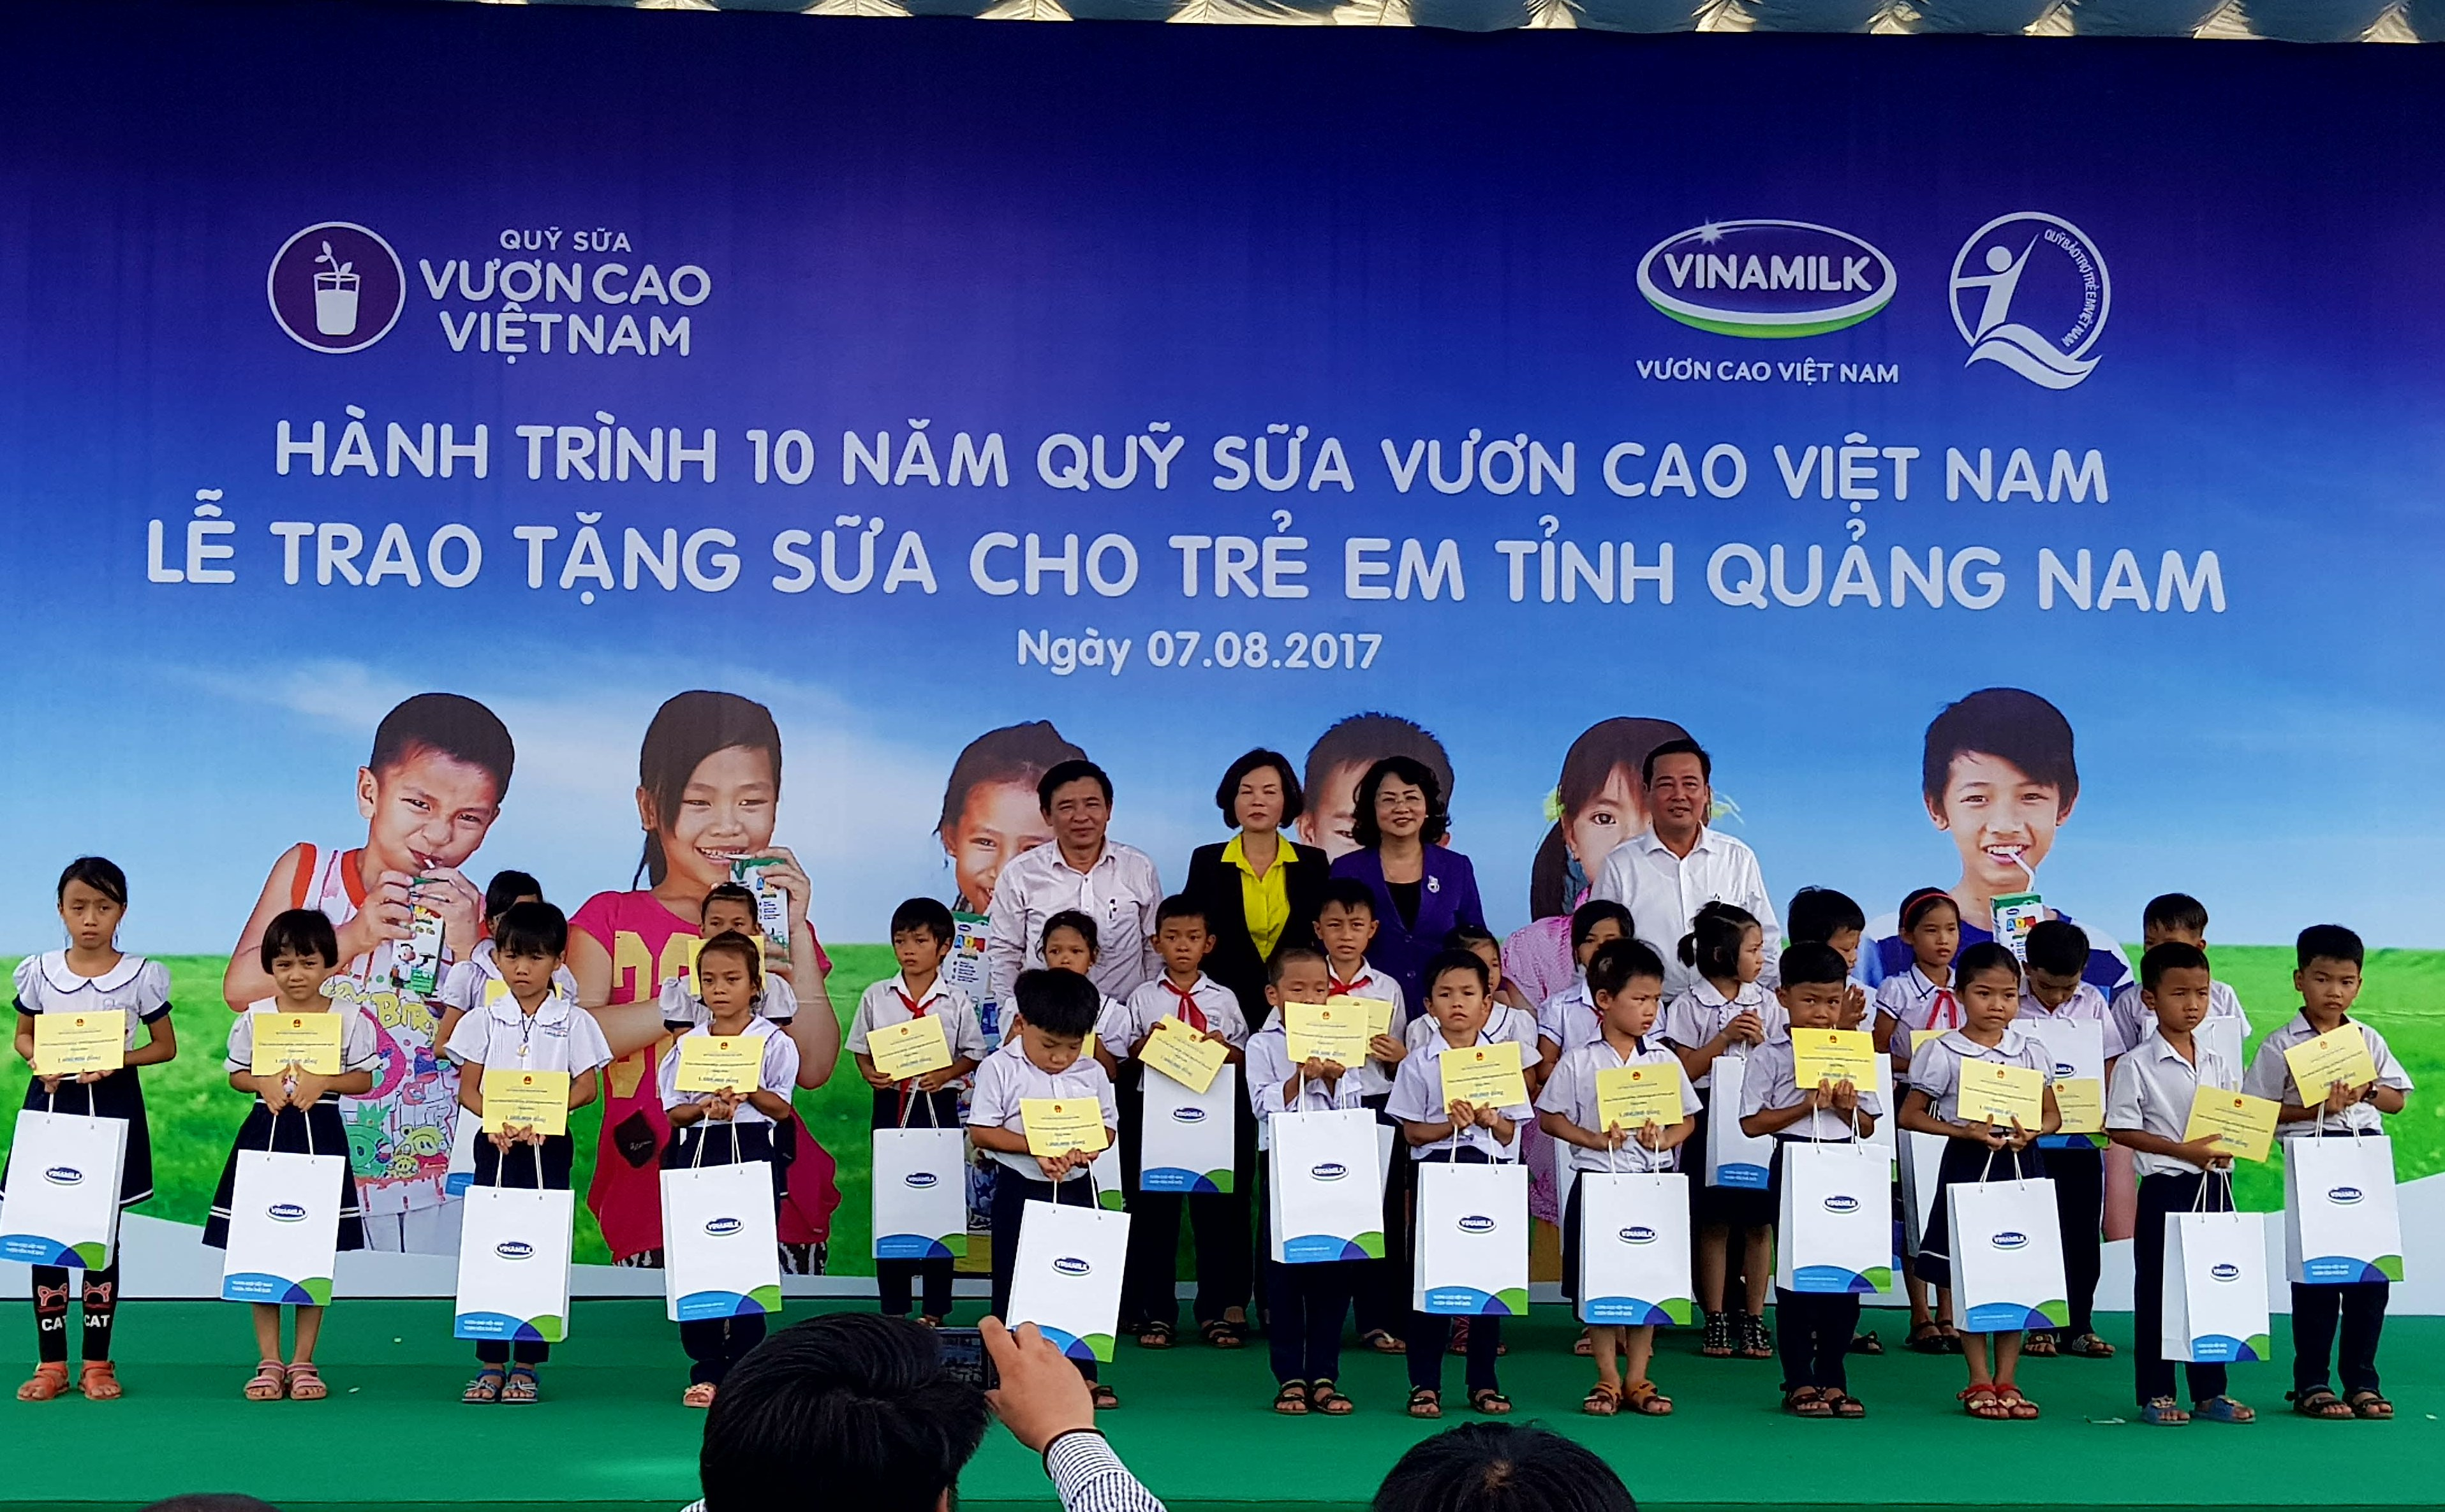 Over 46,000 servings of milk provided for children in Quang Nam province